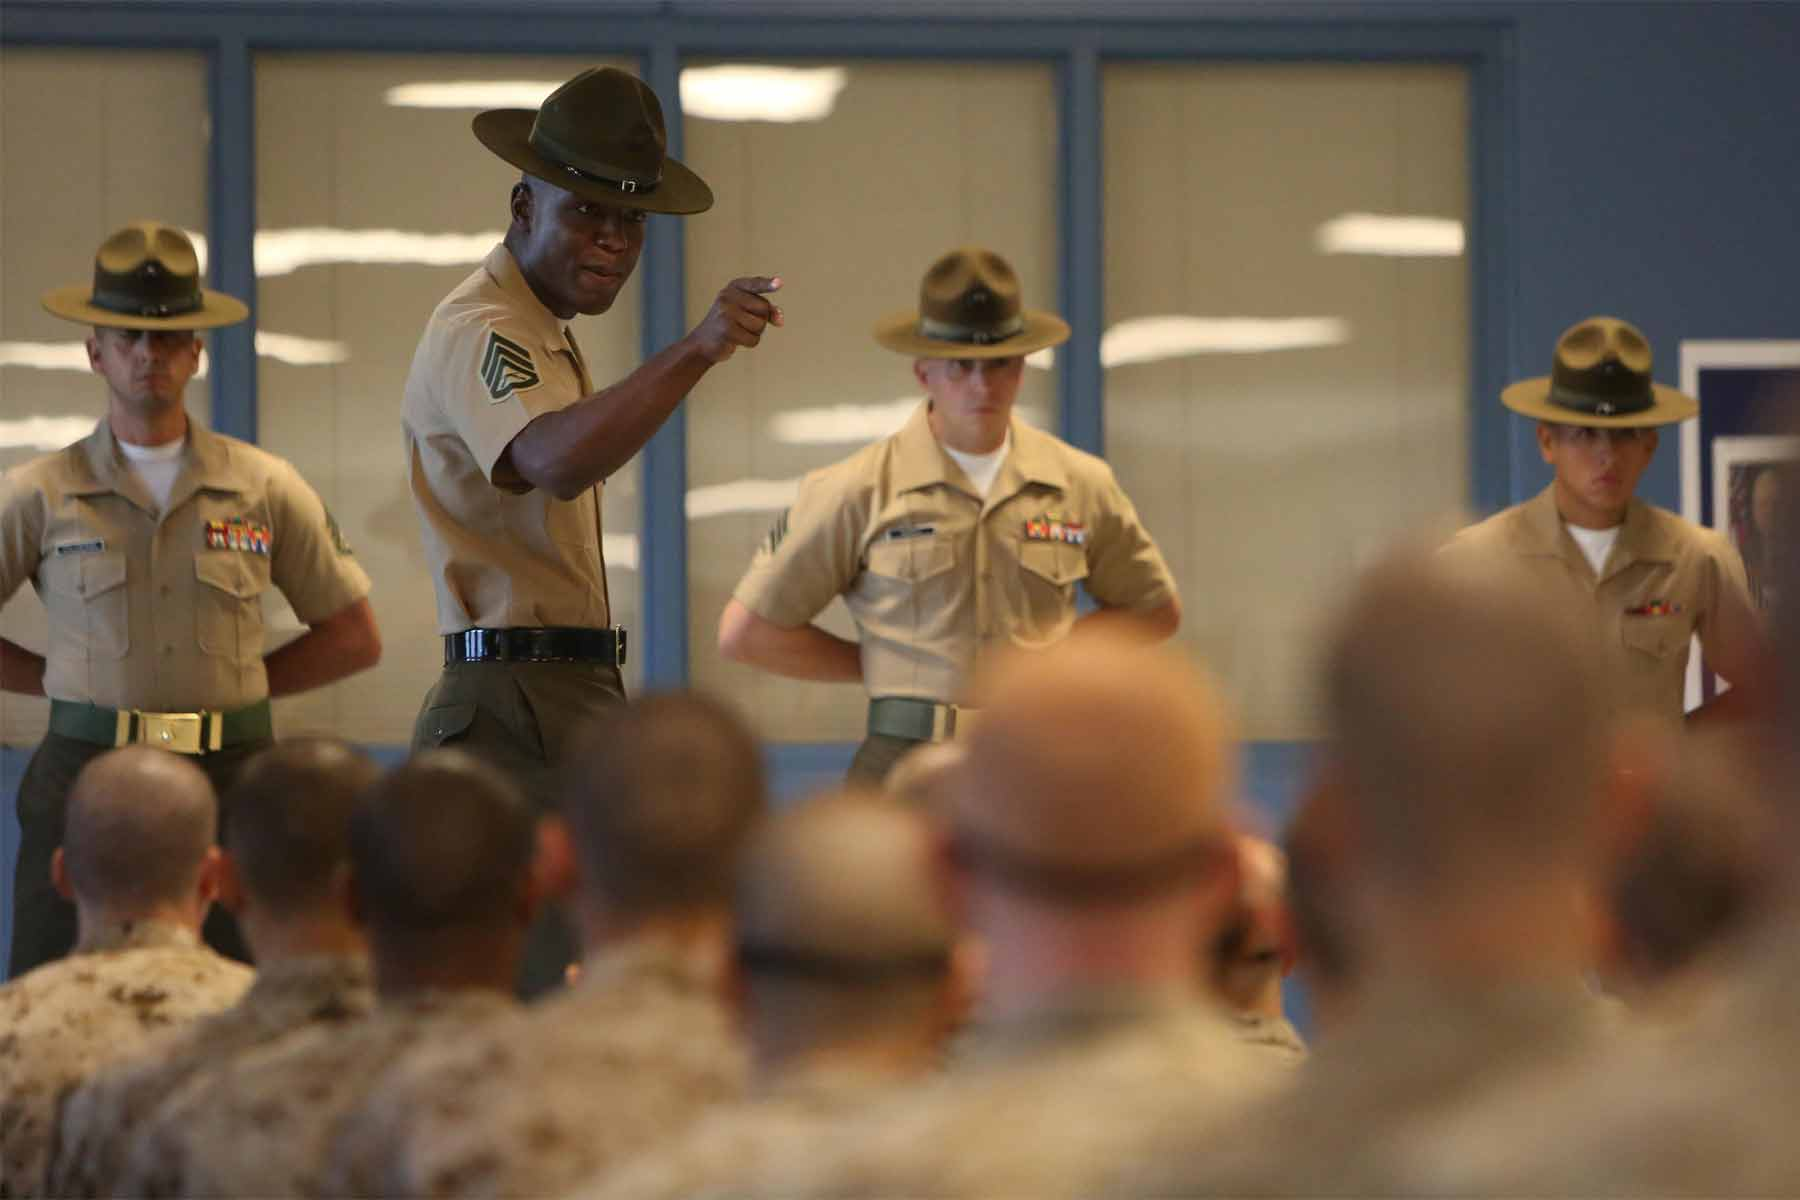 Two victims of US Marines nude photo-sharing network come